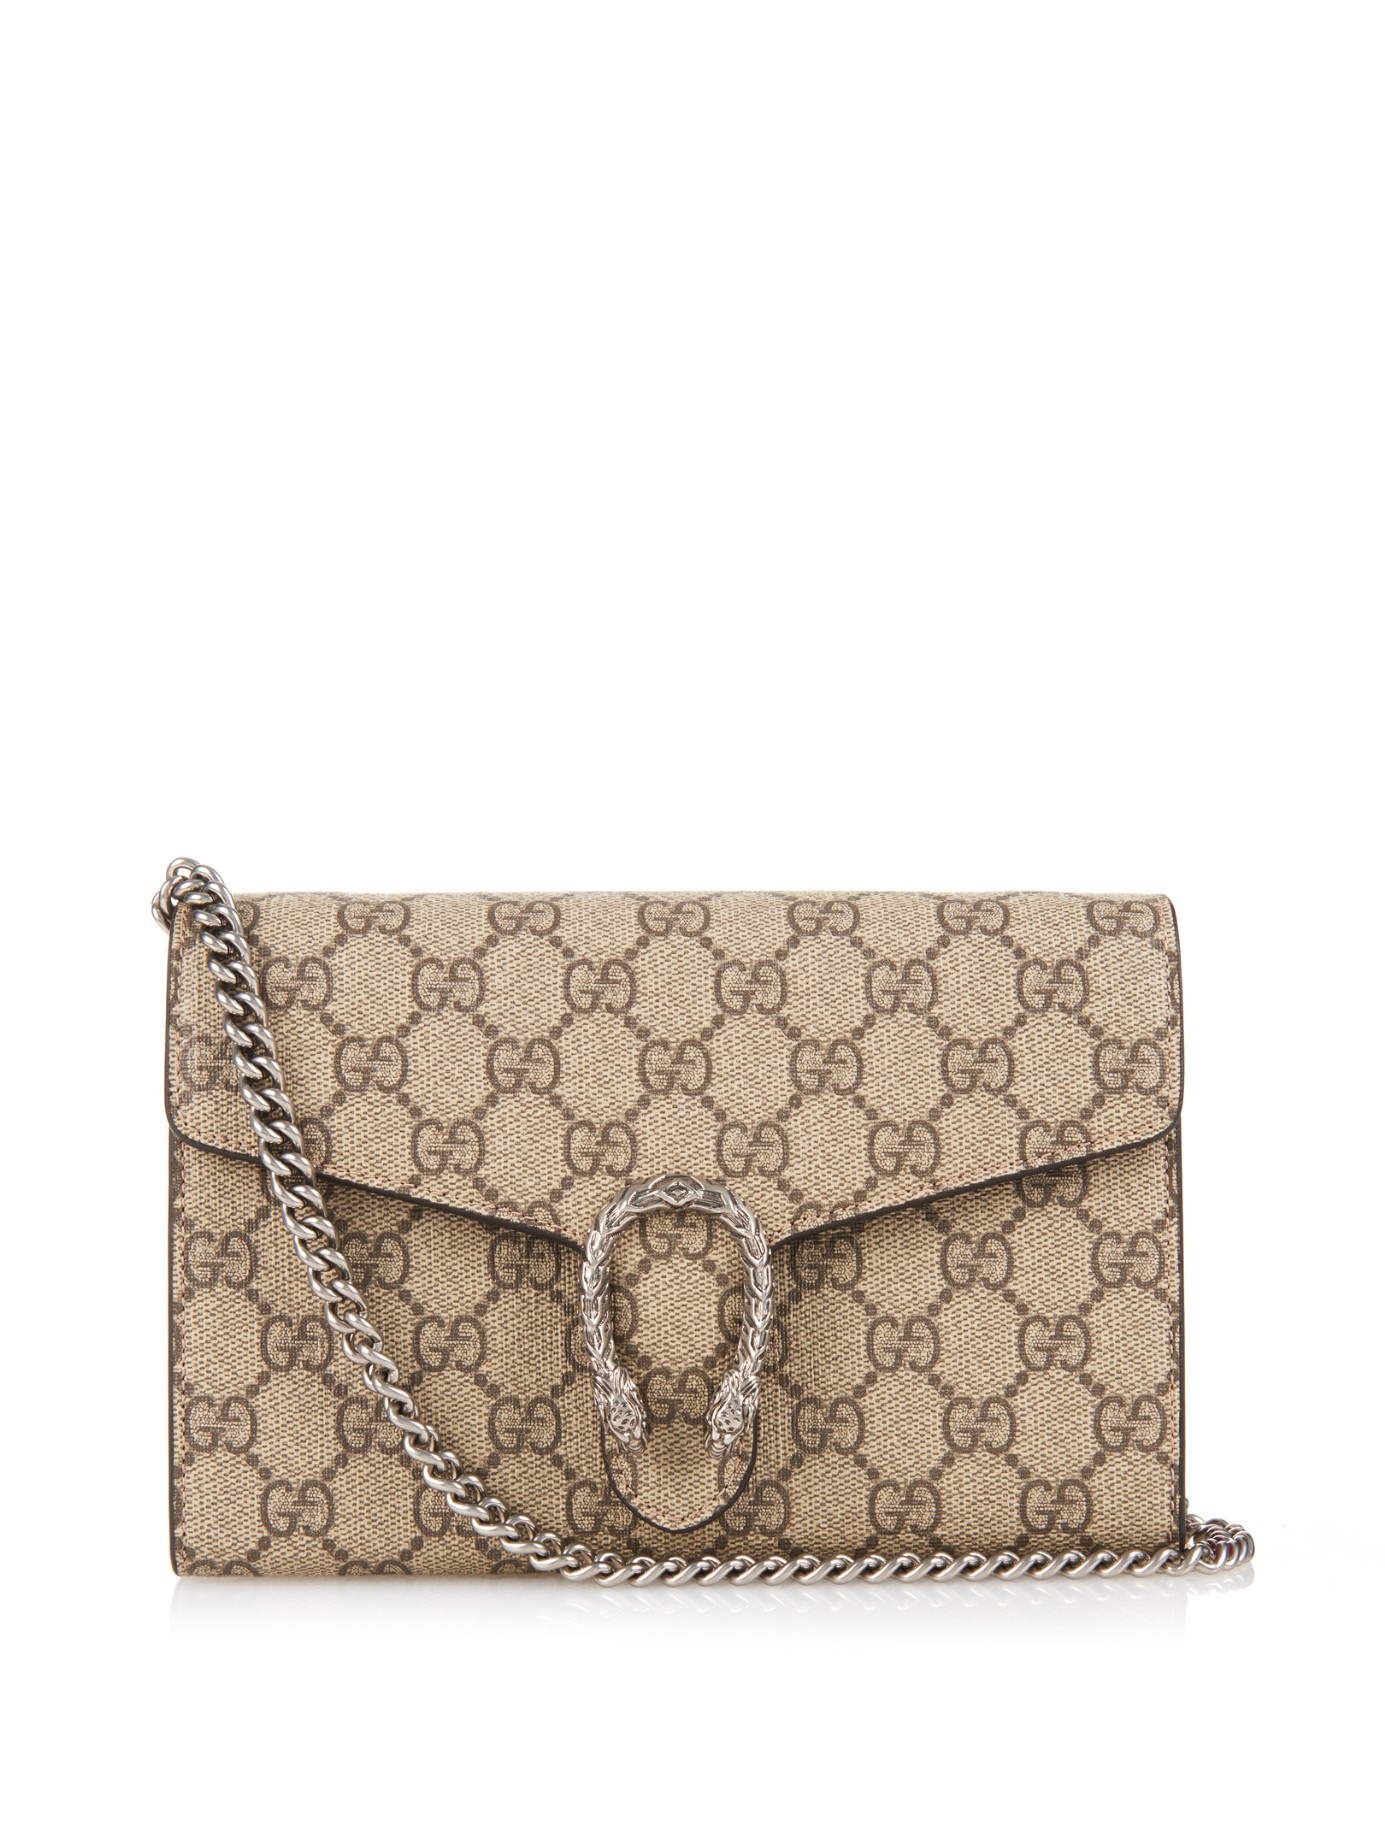 49998319c732 Lyst - Gucci Gg Supreme Canvas Cross-body Bag in Natural